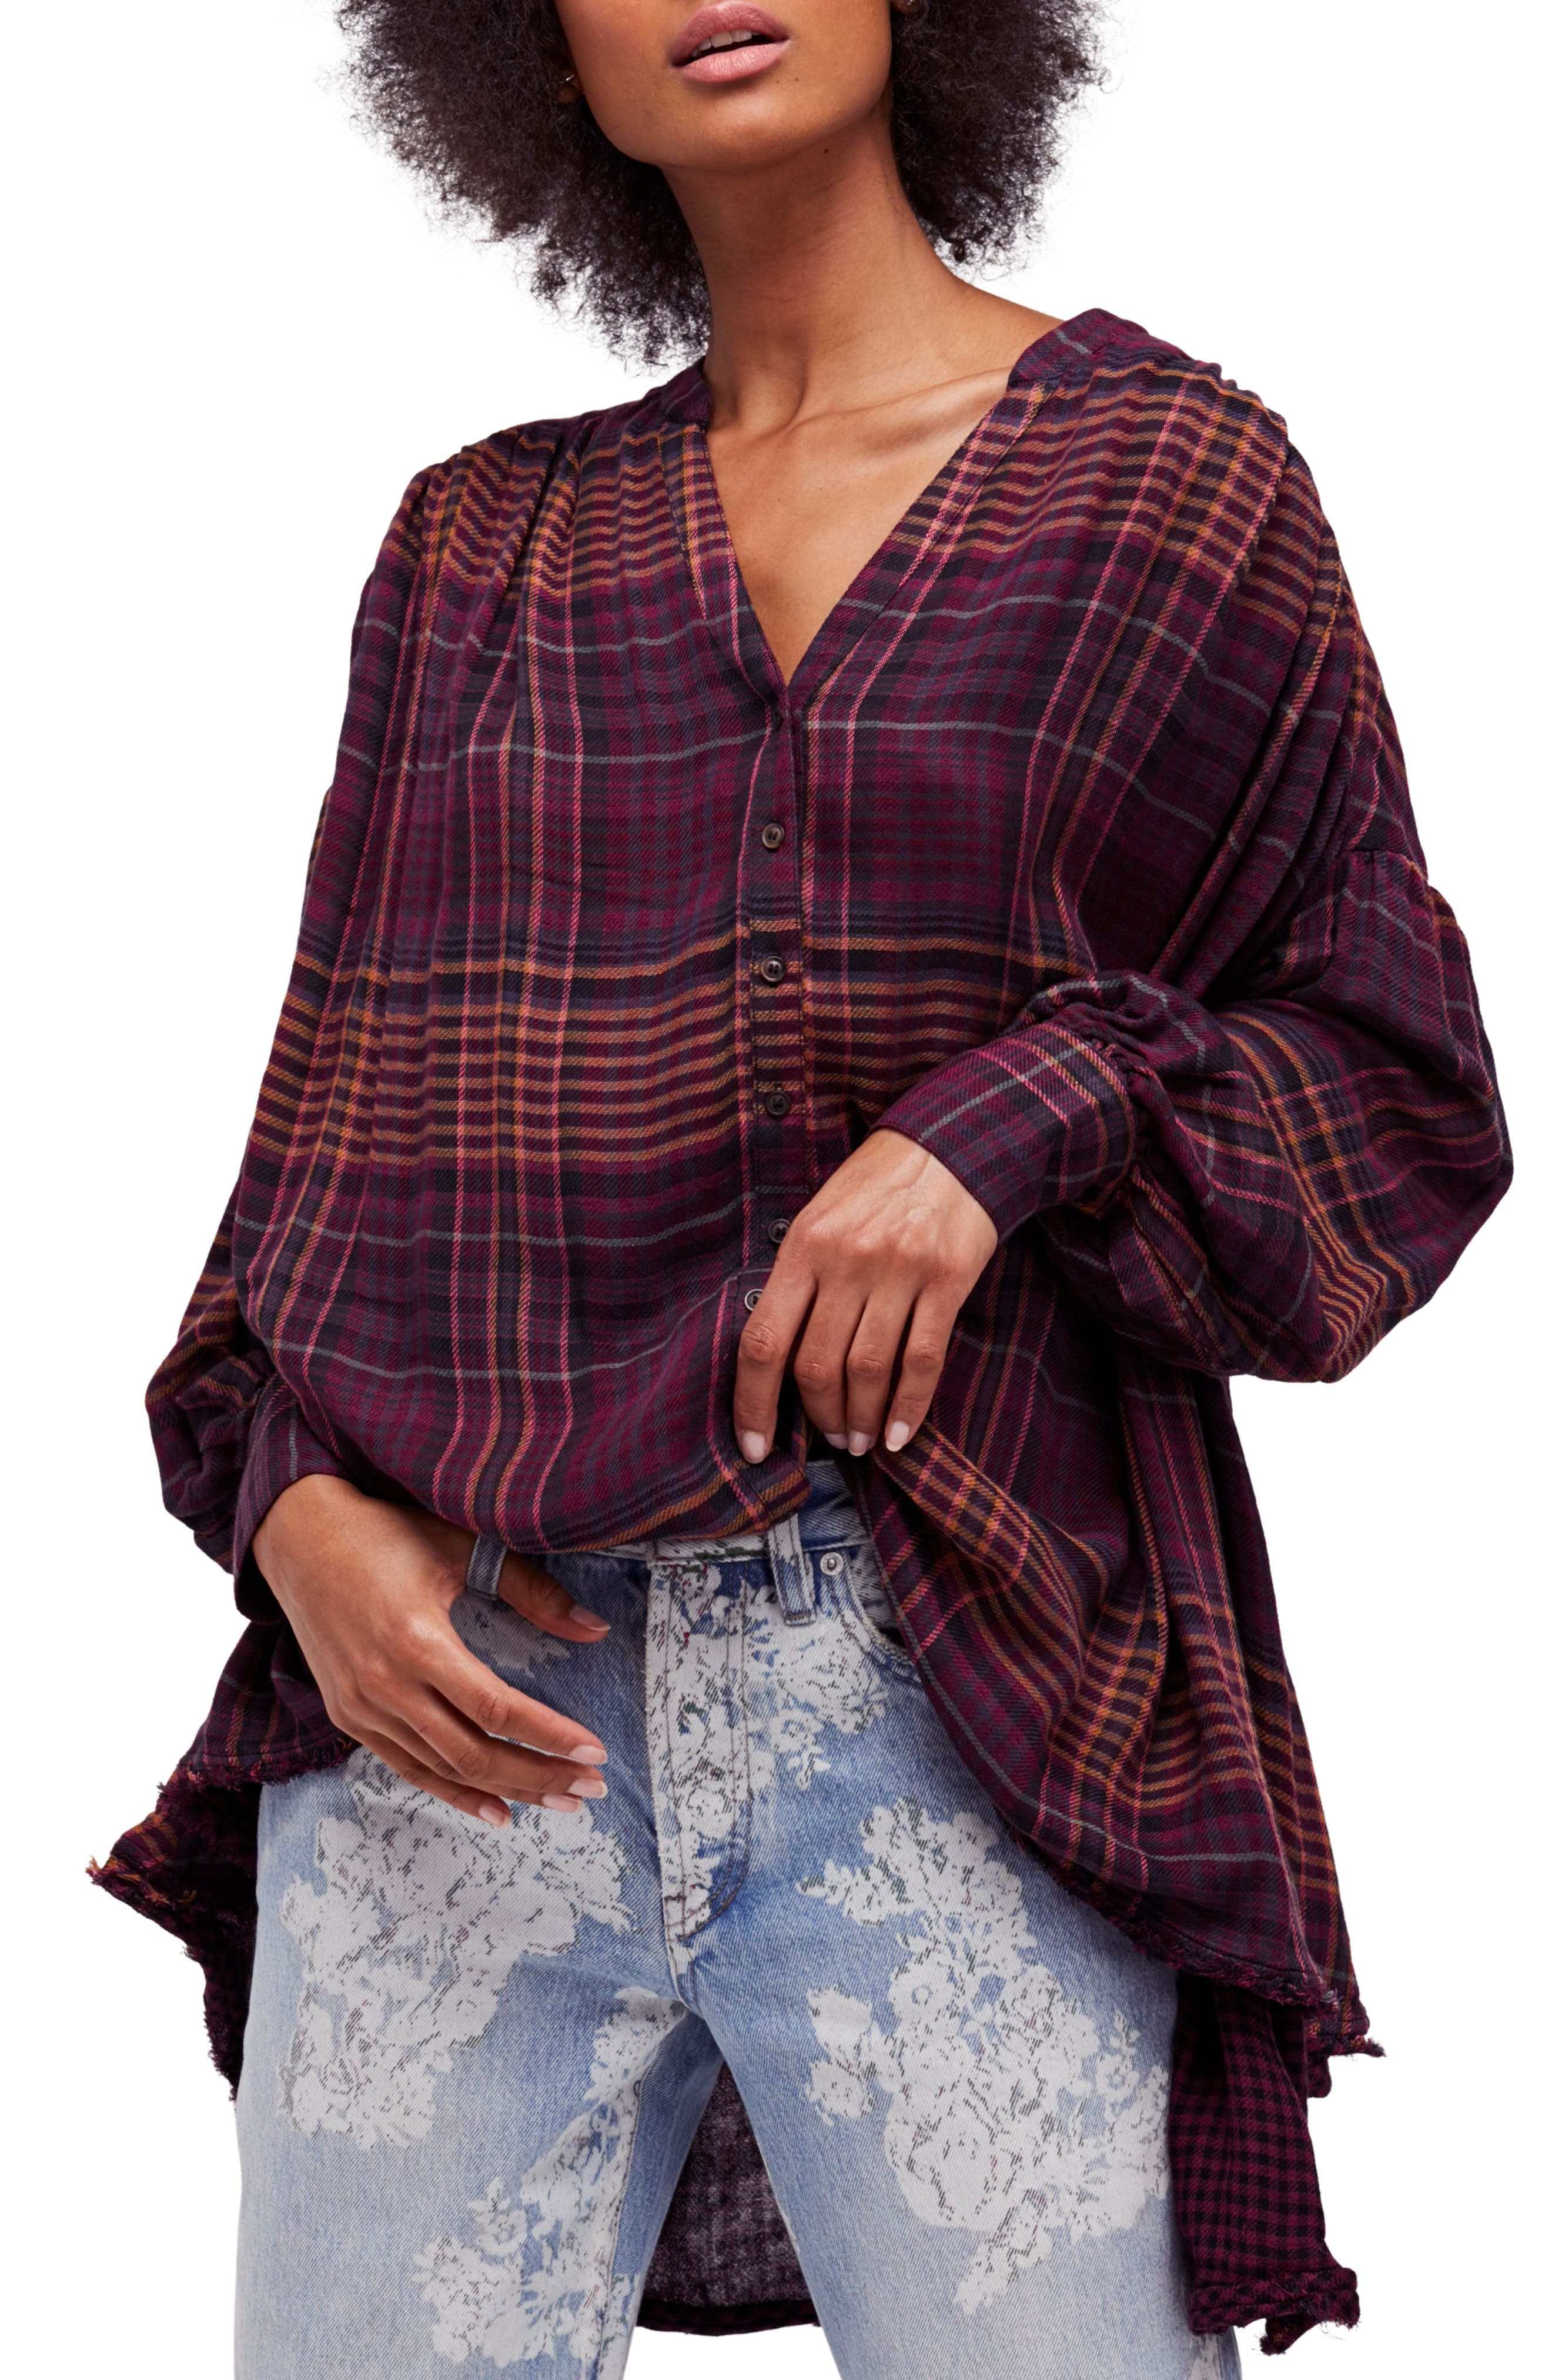 Free People Come on Over Plaid Top